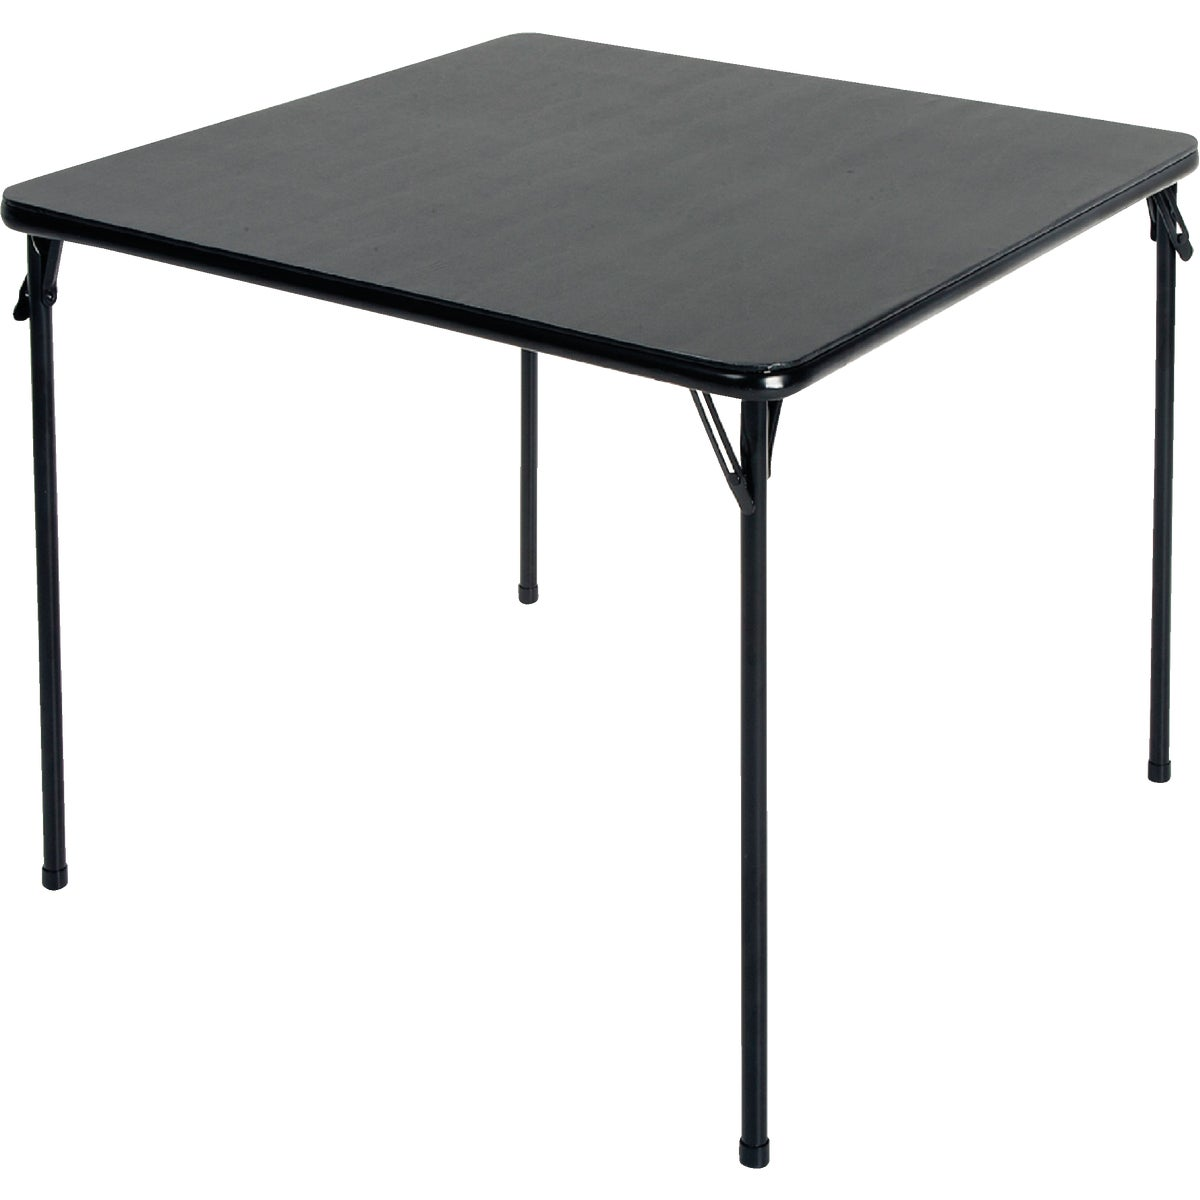 BLACK SQ FOLDING TABLE - 14-619-BLK2 by Cosco    J Myalls